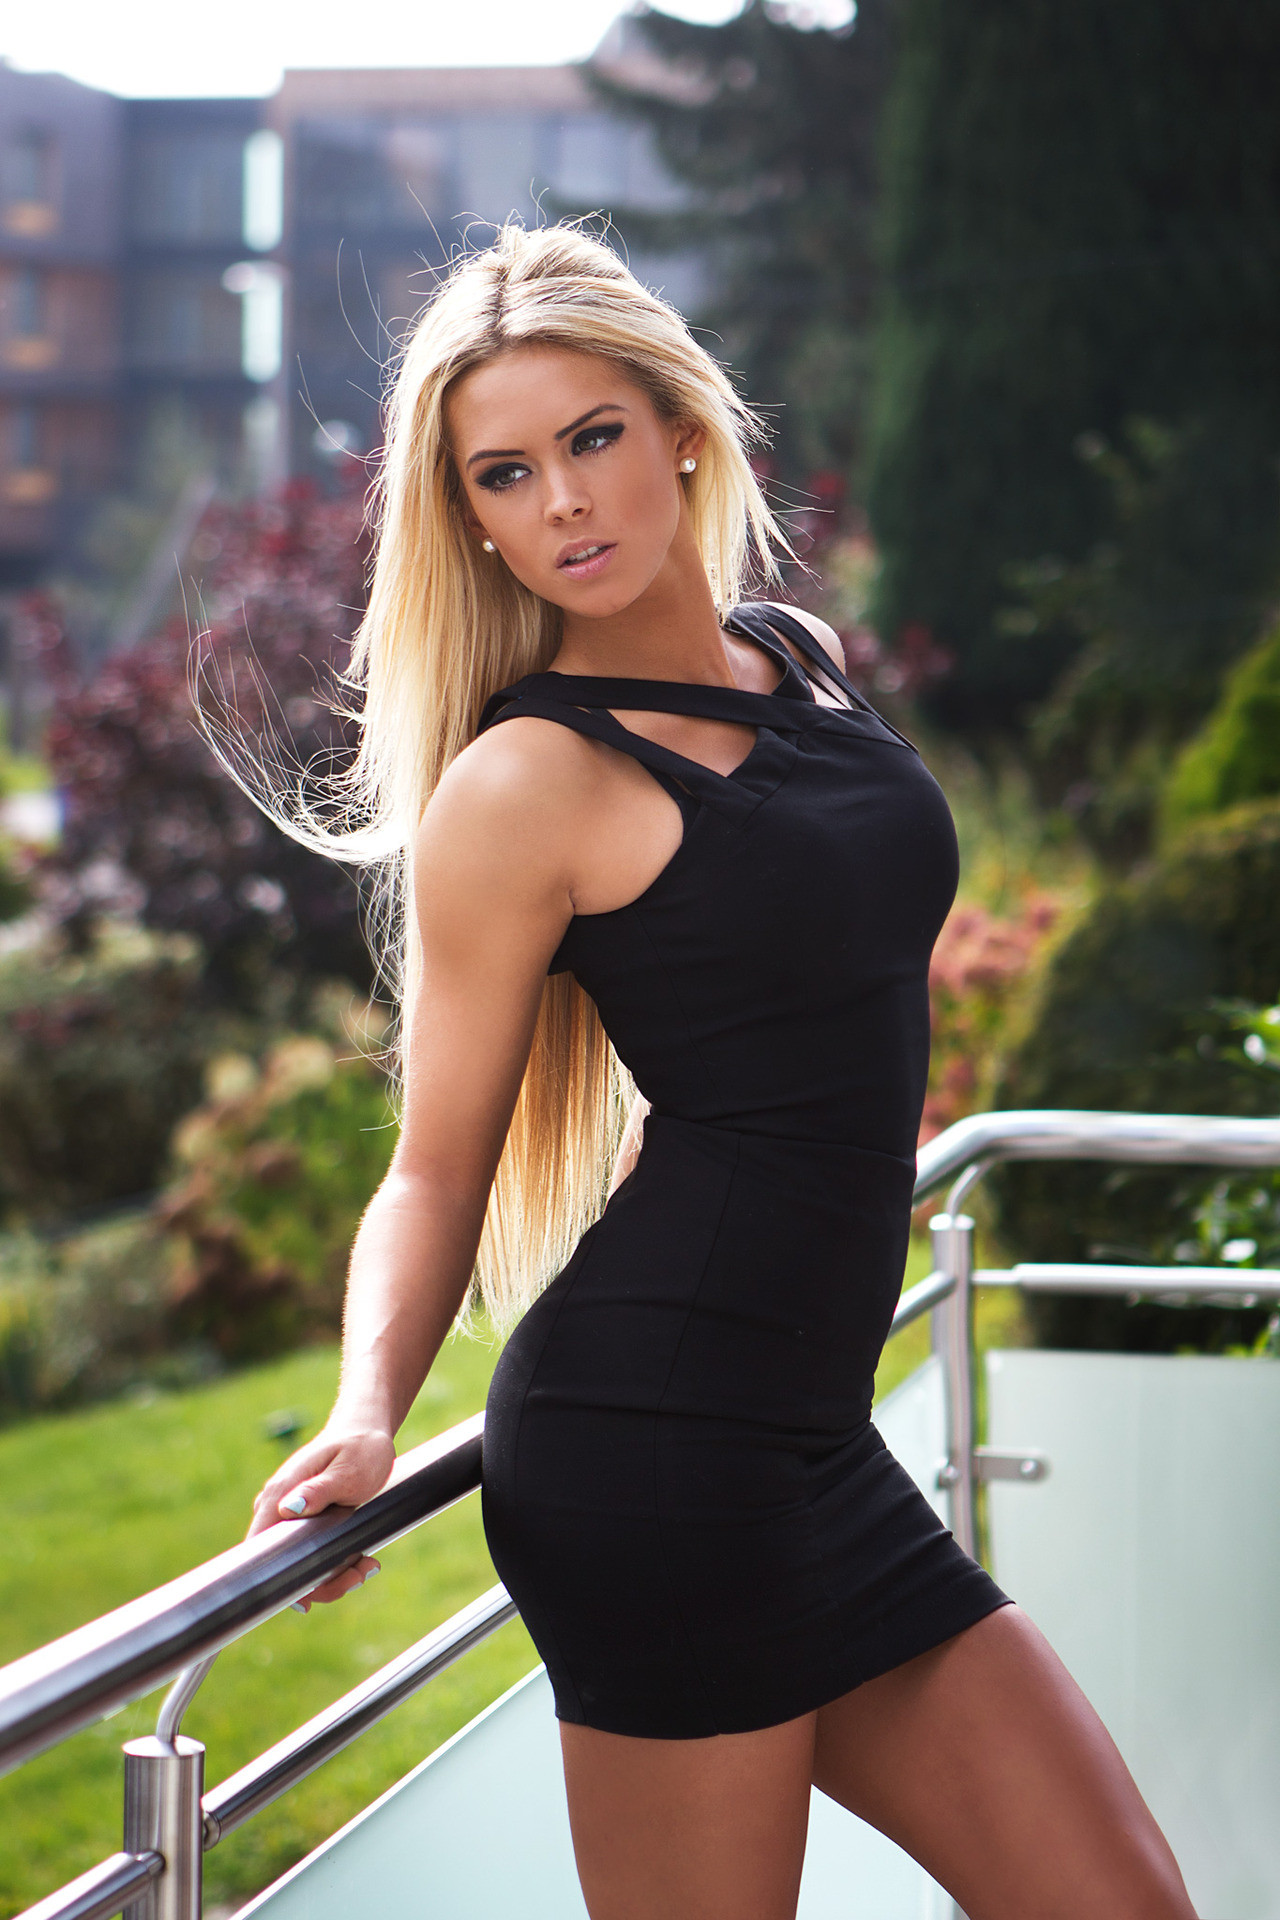 cam chat free no reg leicester